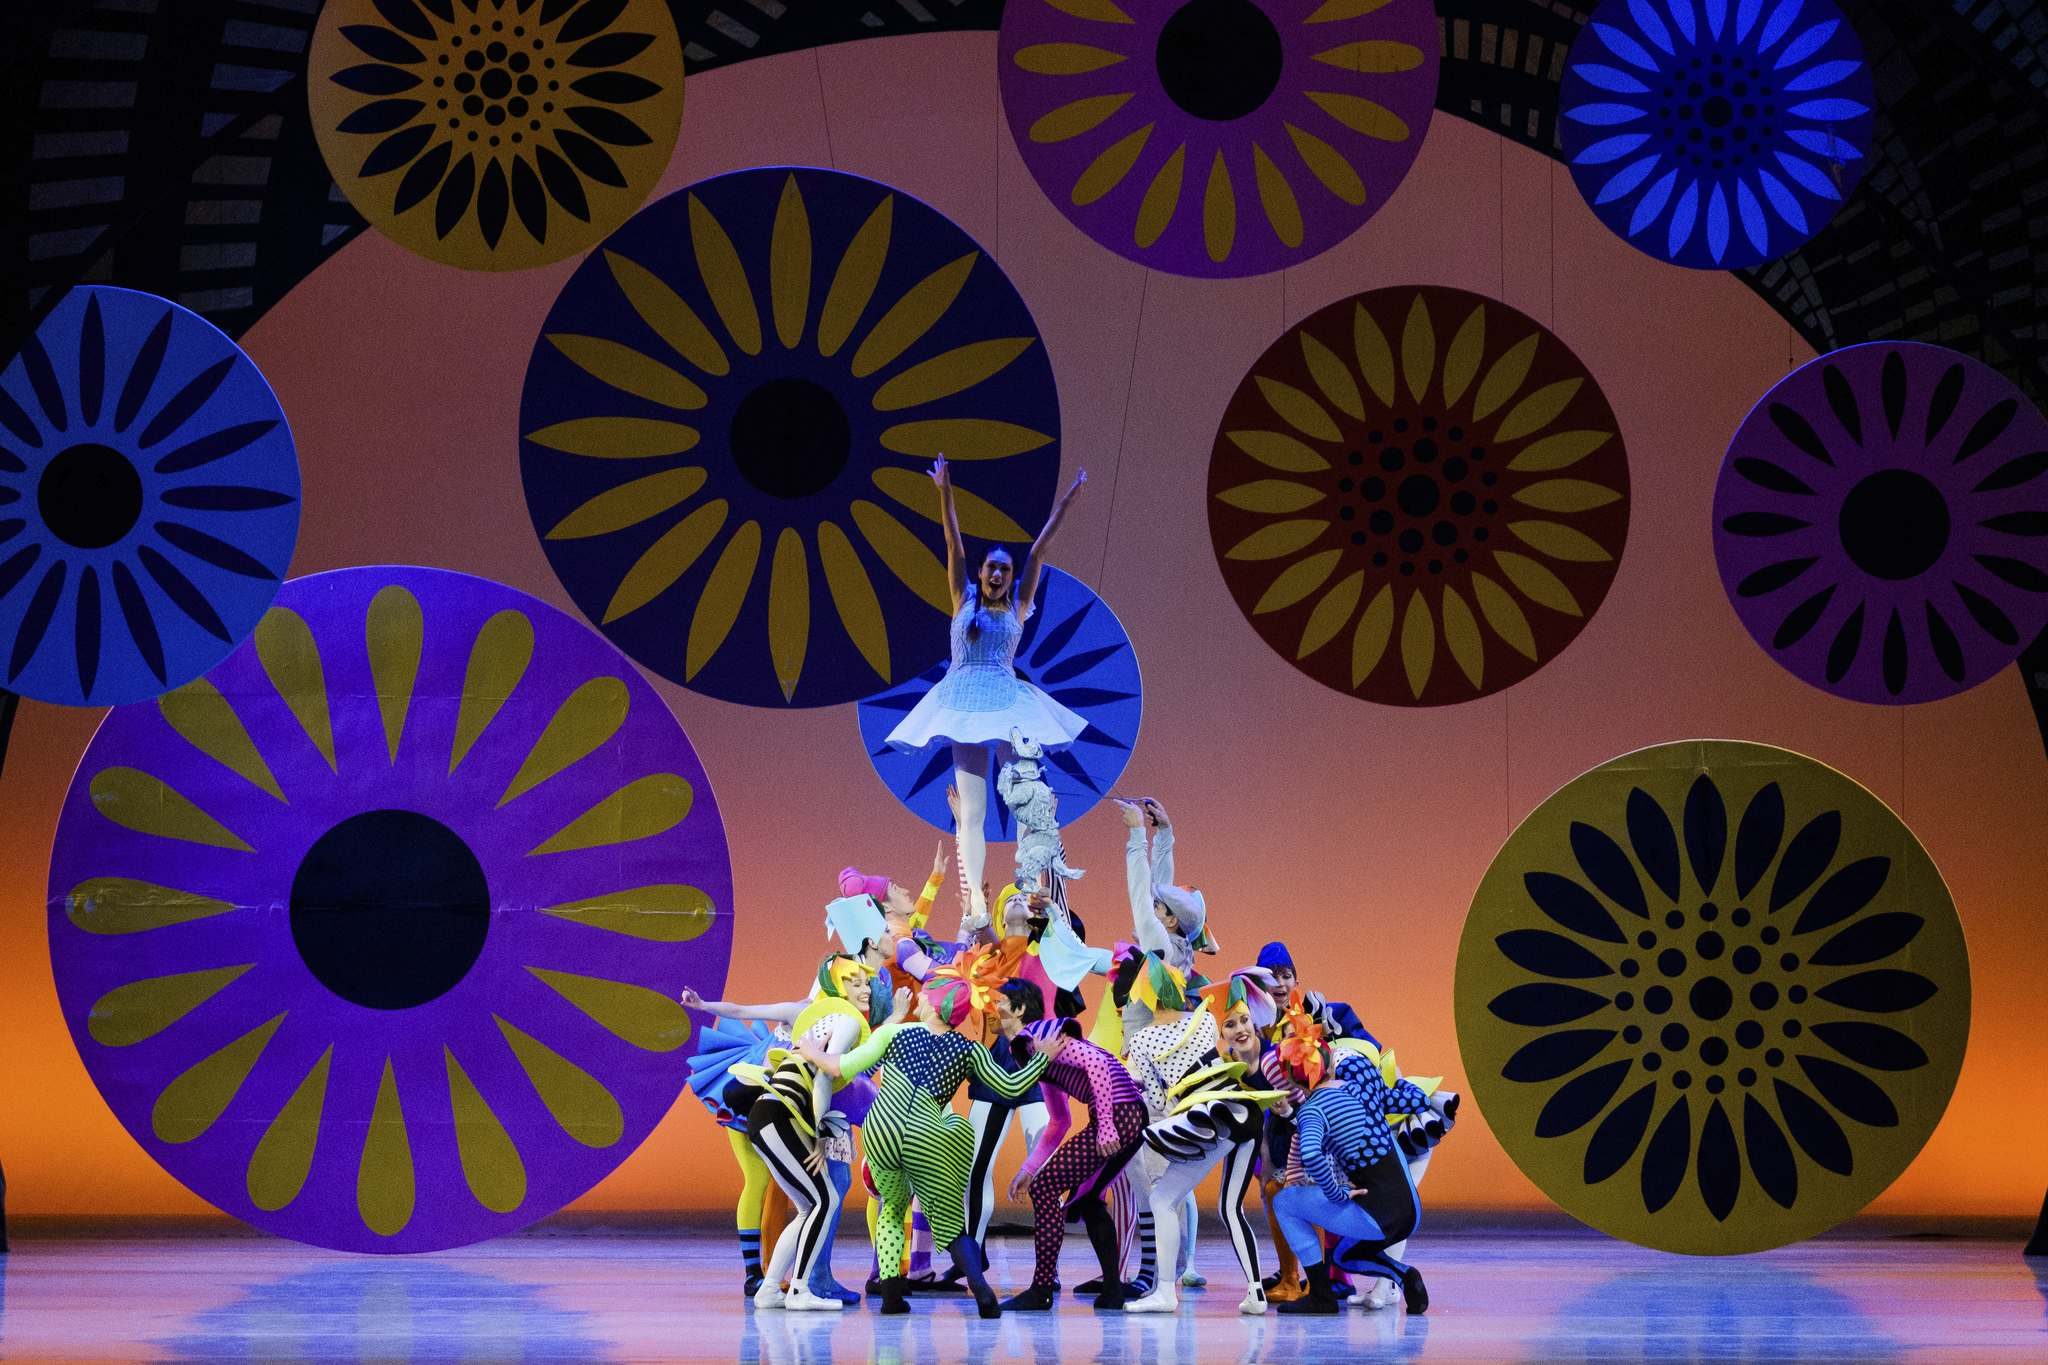 The performance is firmly grounded in virtuosic ballet technique, performed en pointe with the show's kaleidoscopic juxtaposition of styles. (Daniel Crump / Royal Winnipeg Ballet)</p>